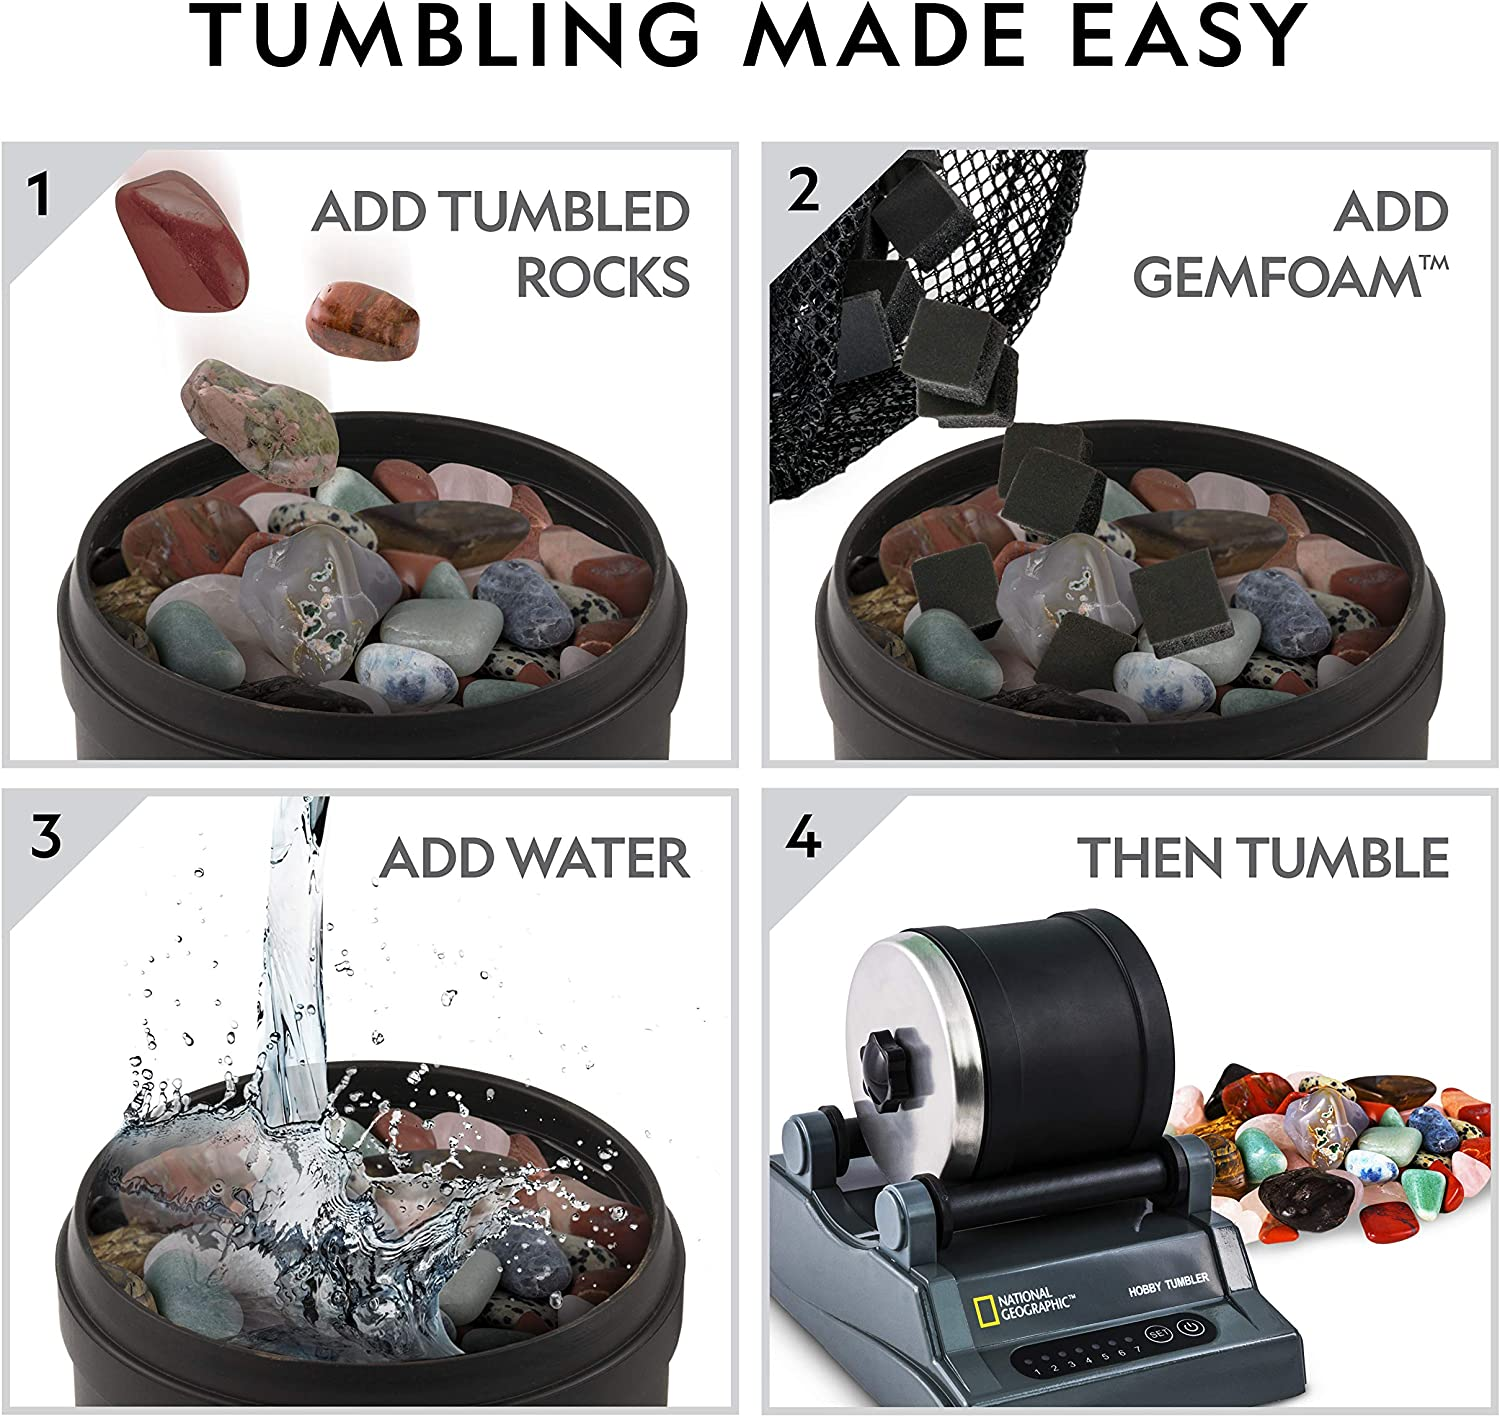 GemFoam Reusable Rock Polisher Foam Adds Shine to Tumbled Rocks and Minerals Use After Rock Tumbler Grit Cycles Rock Tumbling Supplies NATIONAL GEOGRAPHIC Rock Tumbler Media